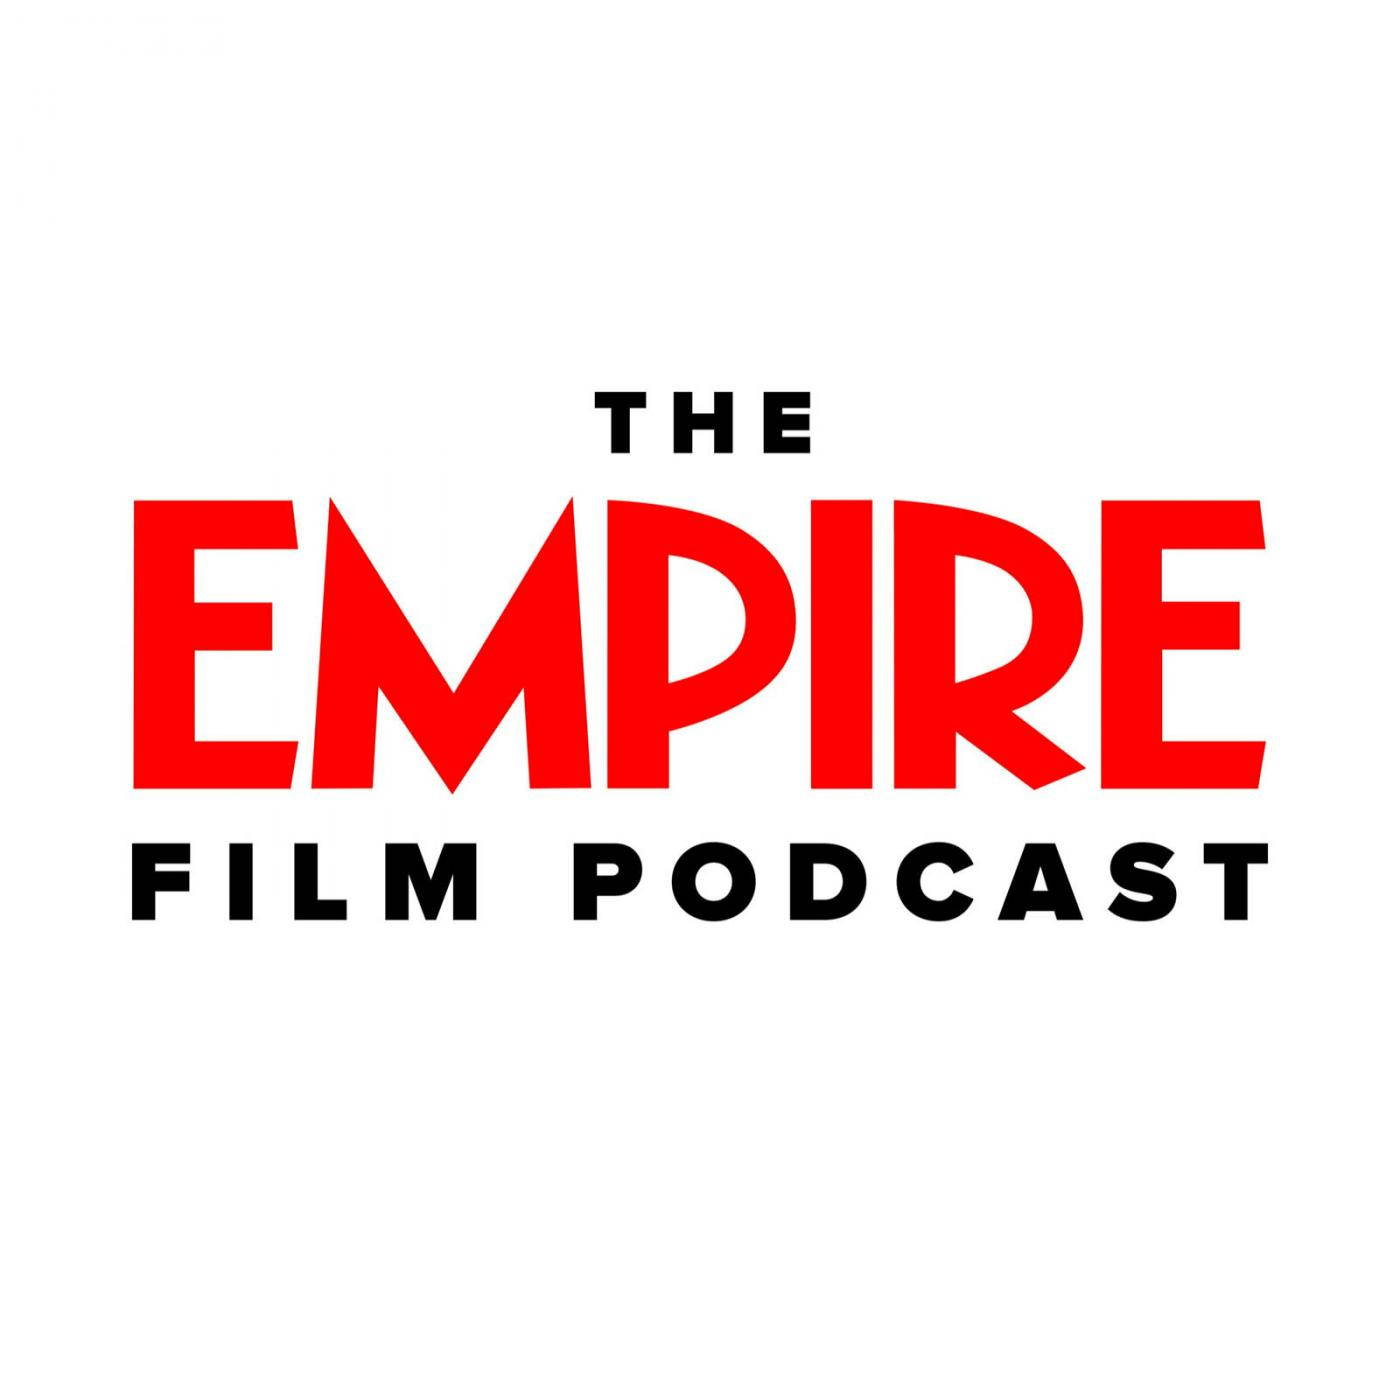 The Empire Film Podcast by The Empire Podcast on Apple Podcasts